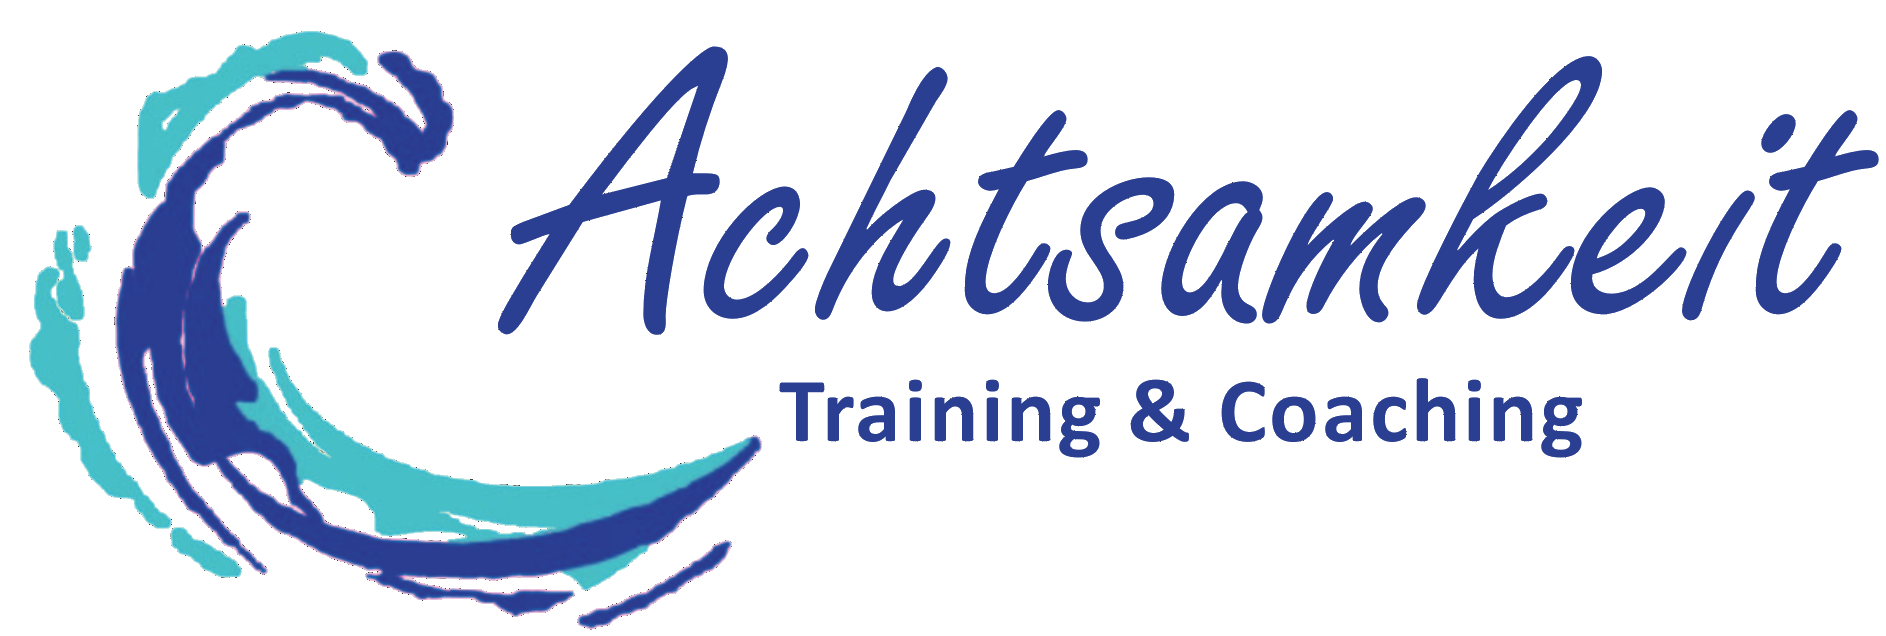 Achtsamkeit Training Coaching transparent